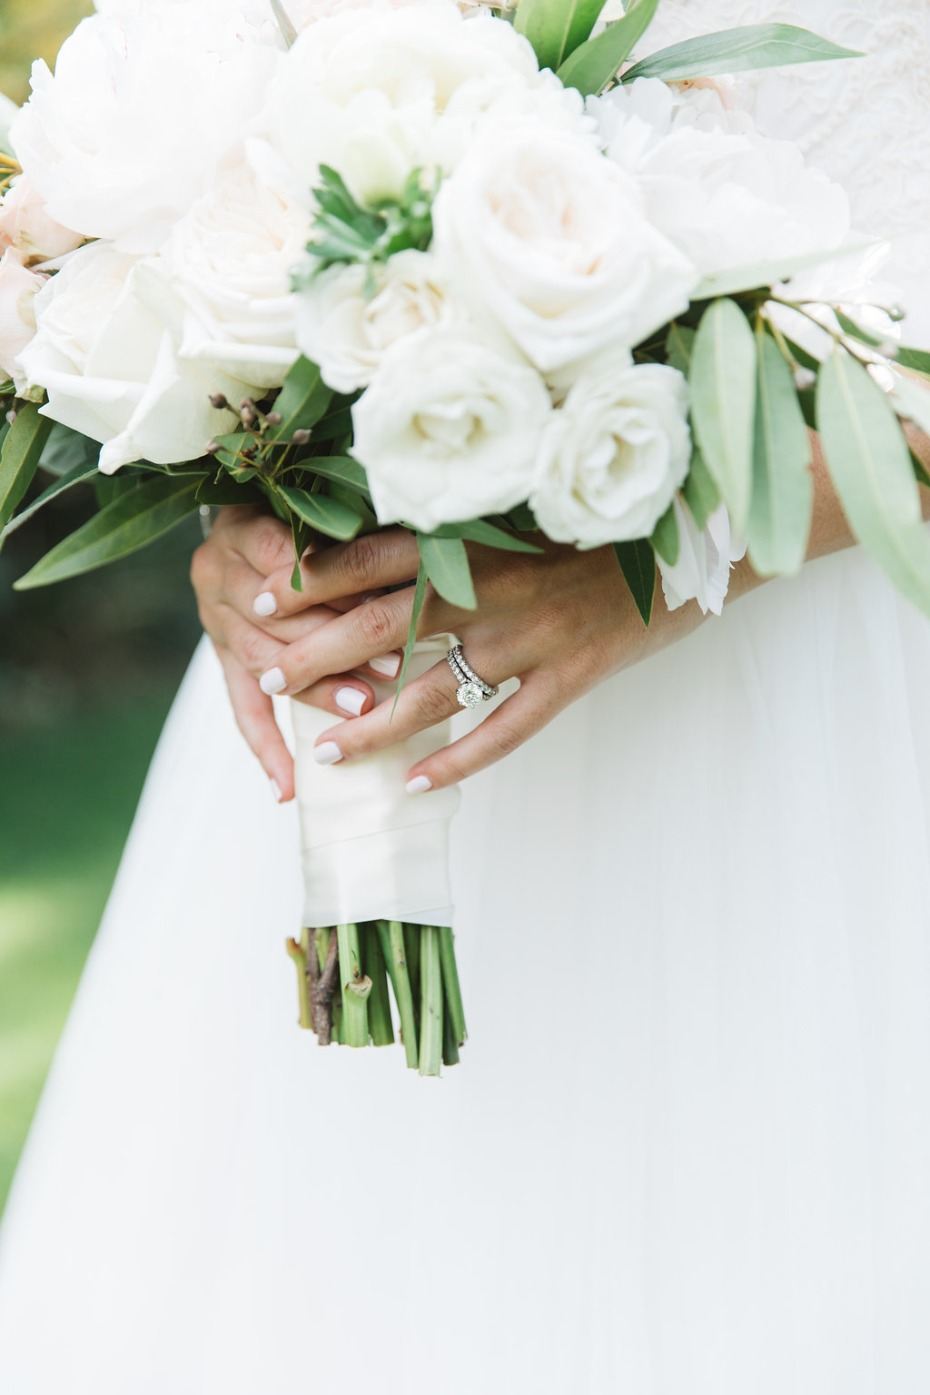 Bridal nails and ring